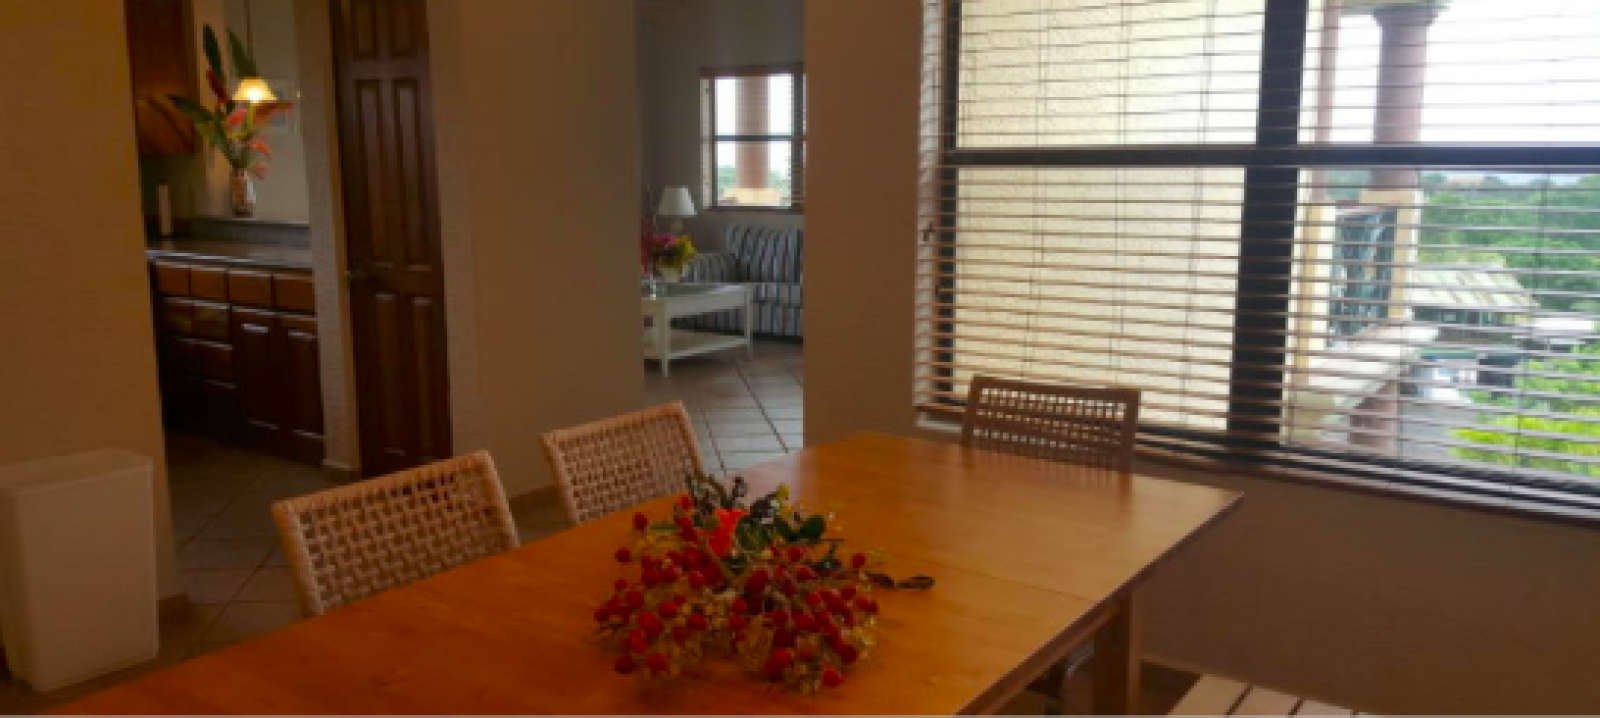 A separate dining area for those more formal occasions.